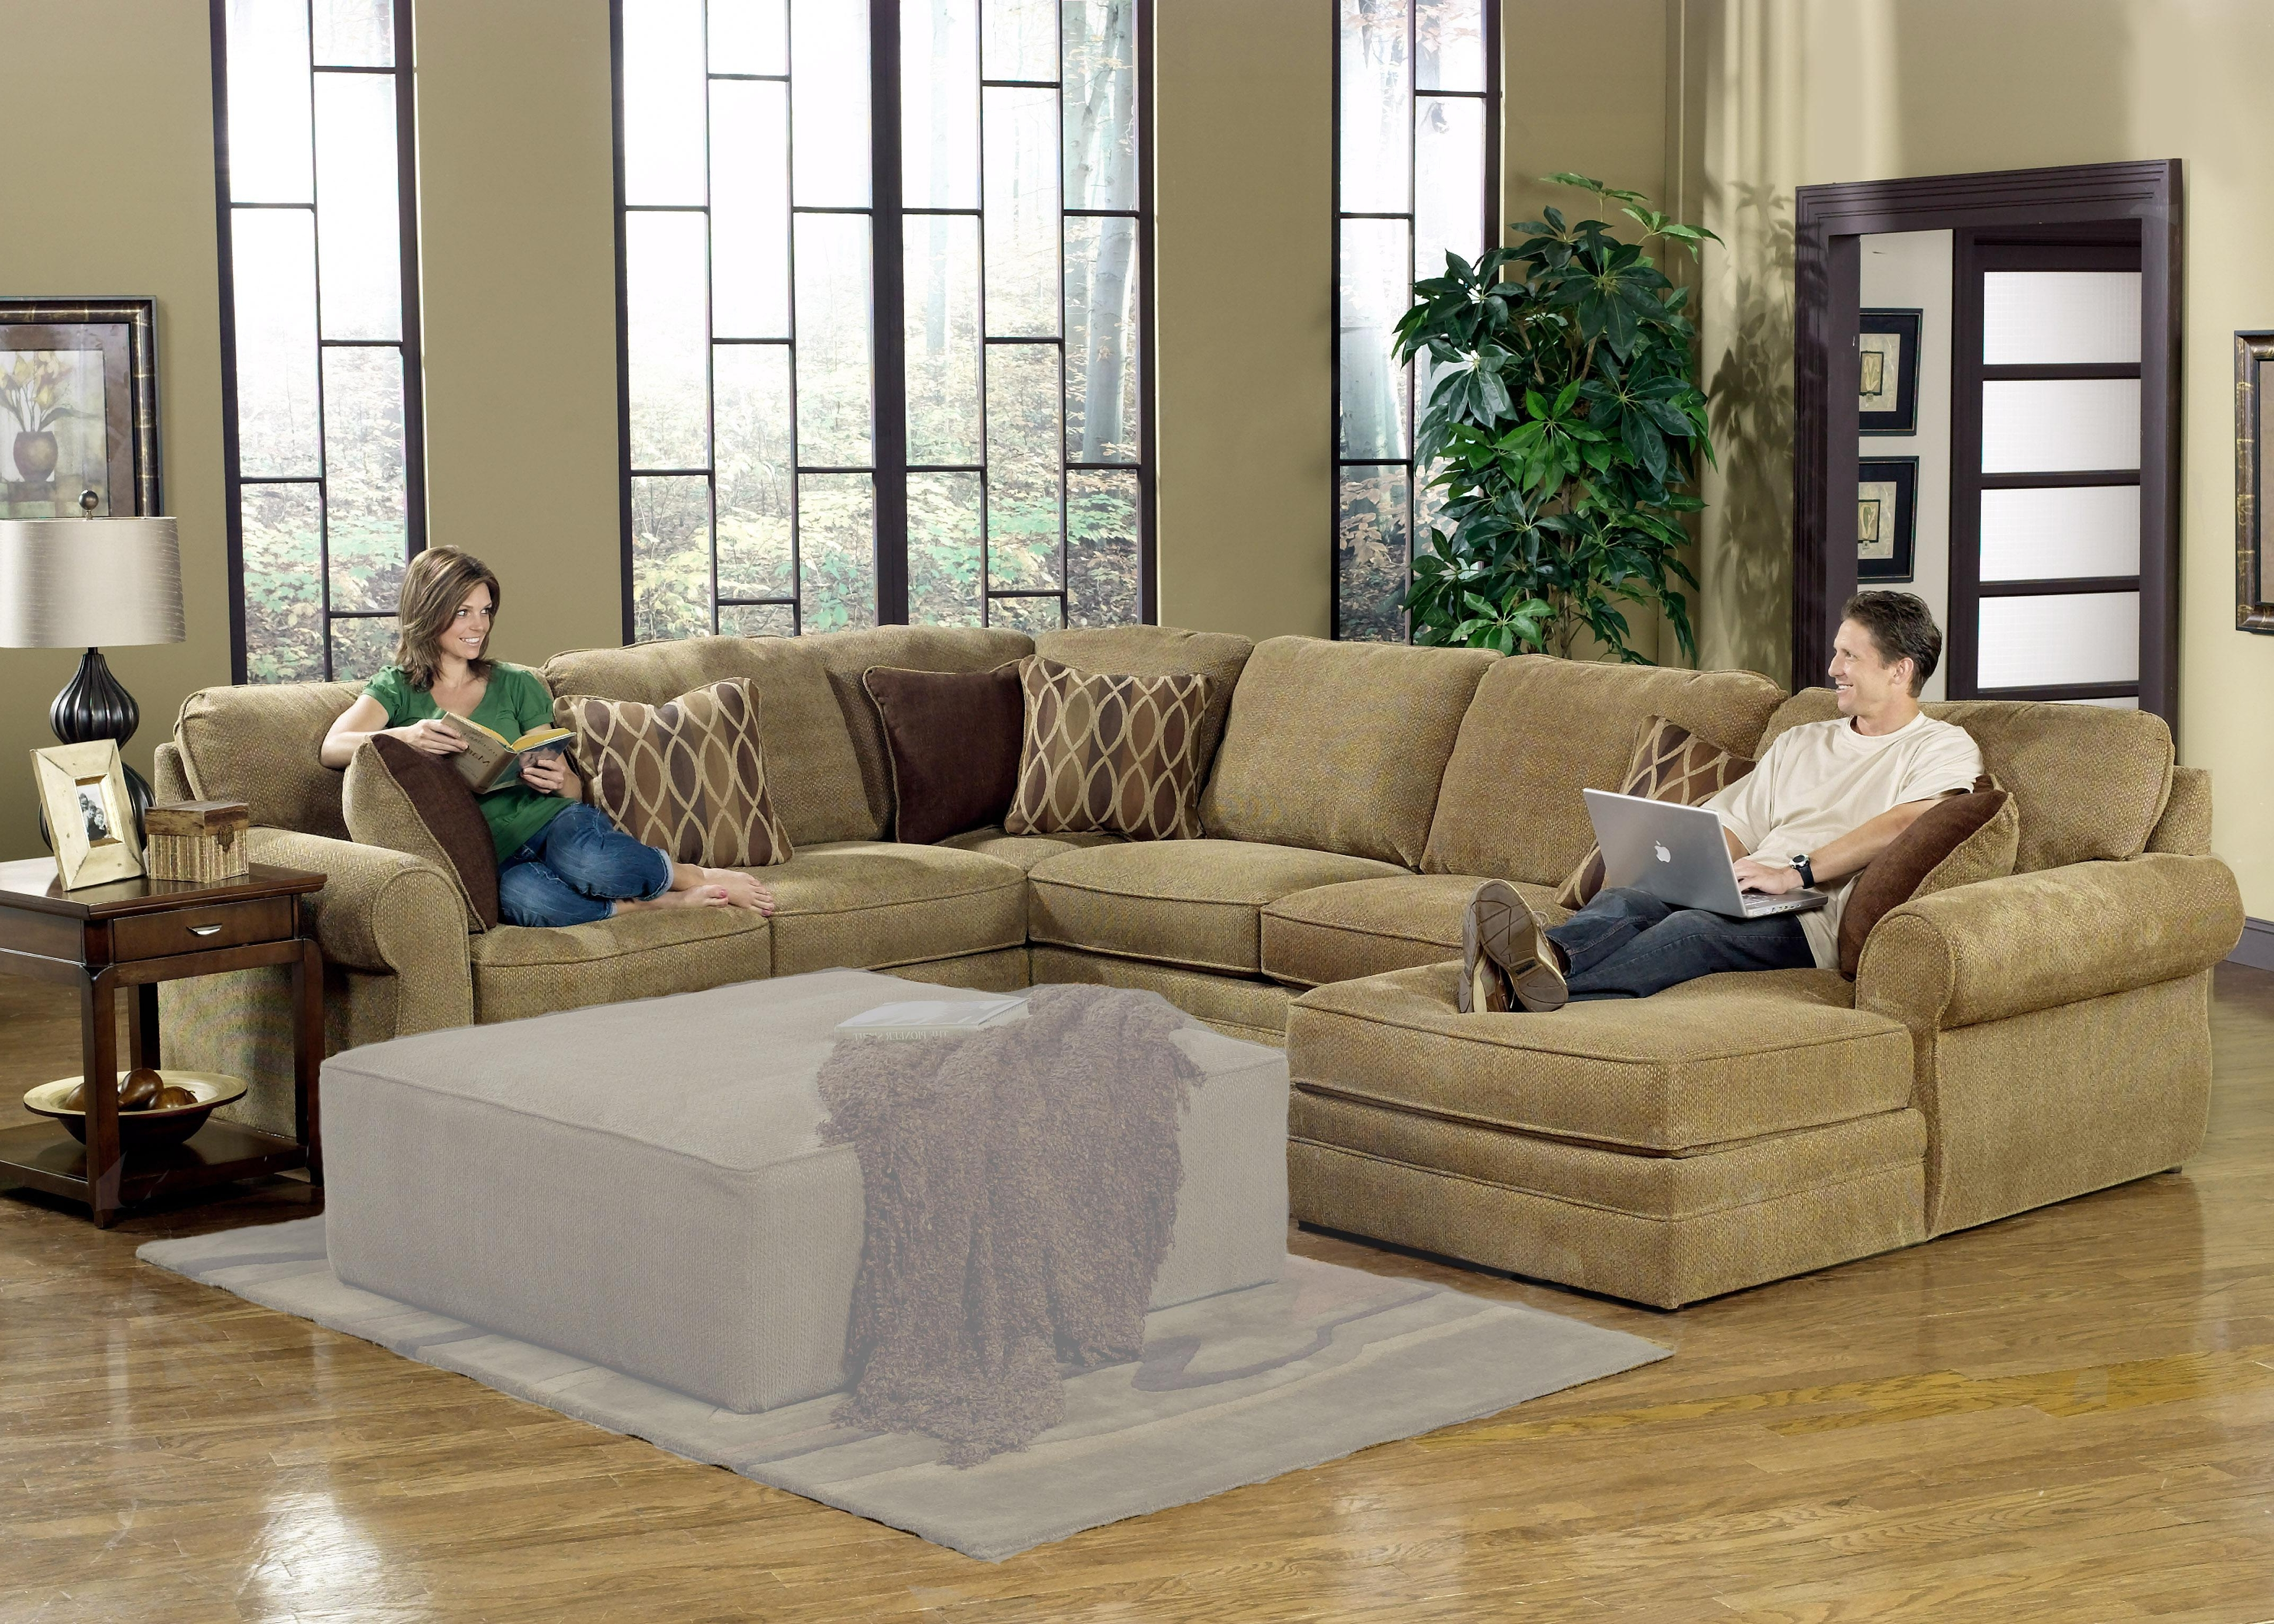 Well Known Large Comfortable Sectional Sofas In Sectional Sofa Design: Adorable Large U Shaped Sectional Sofa Best (View 14 of 15)